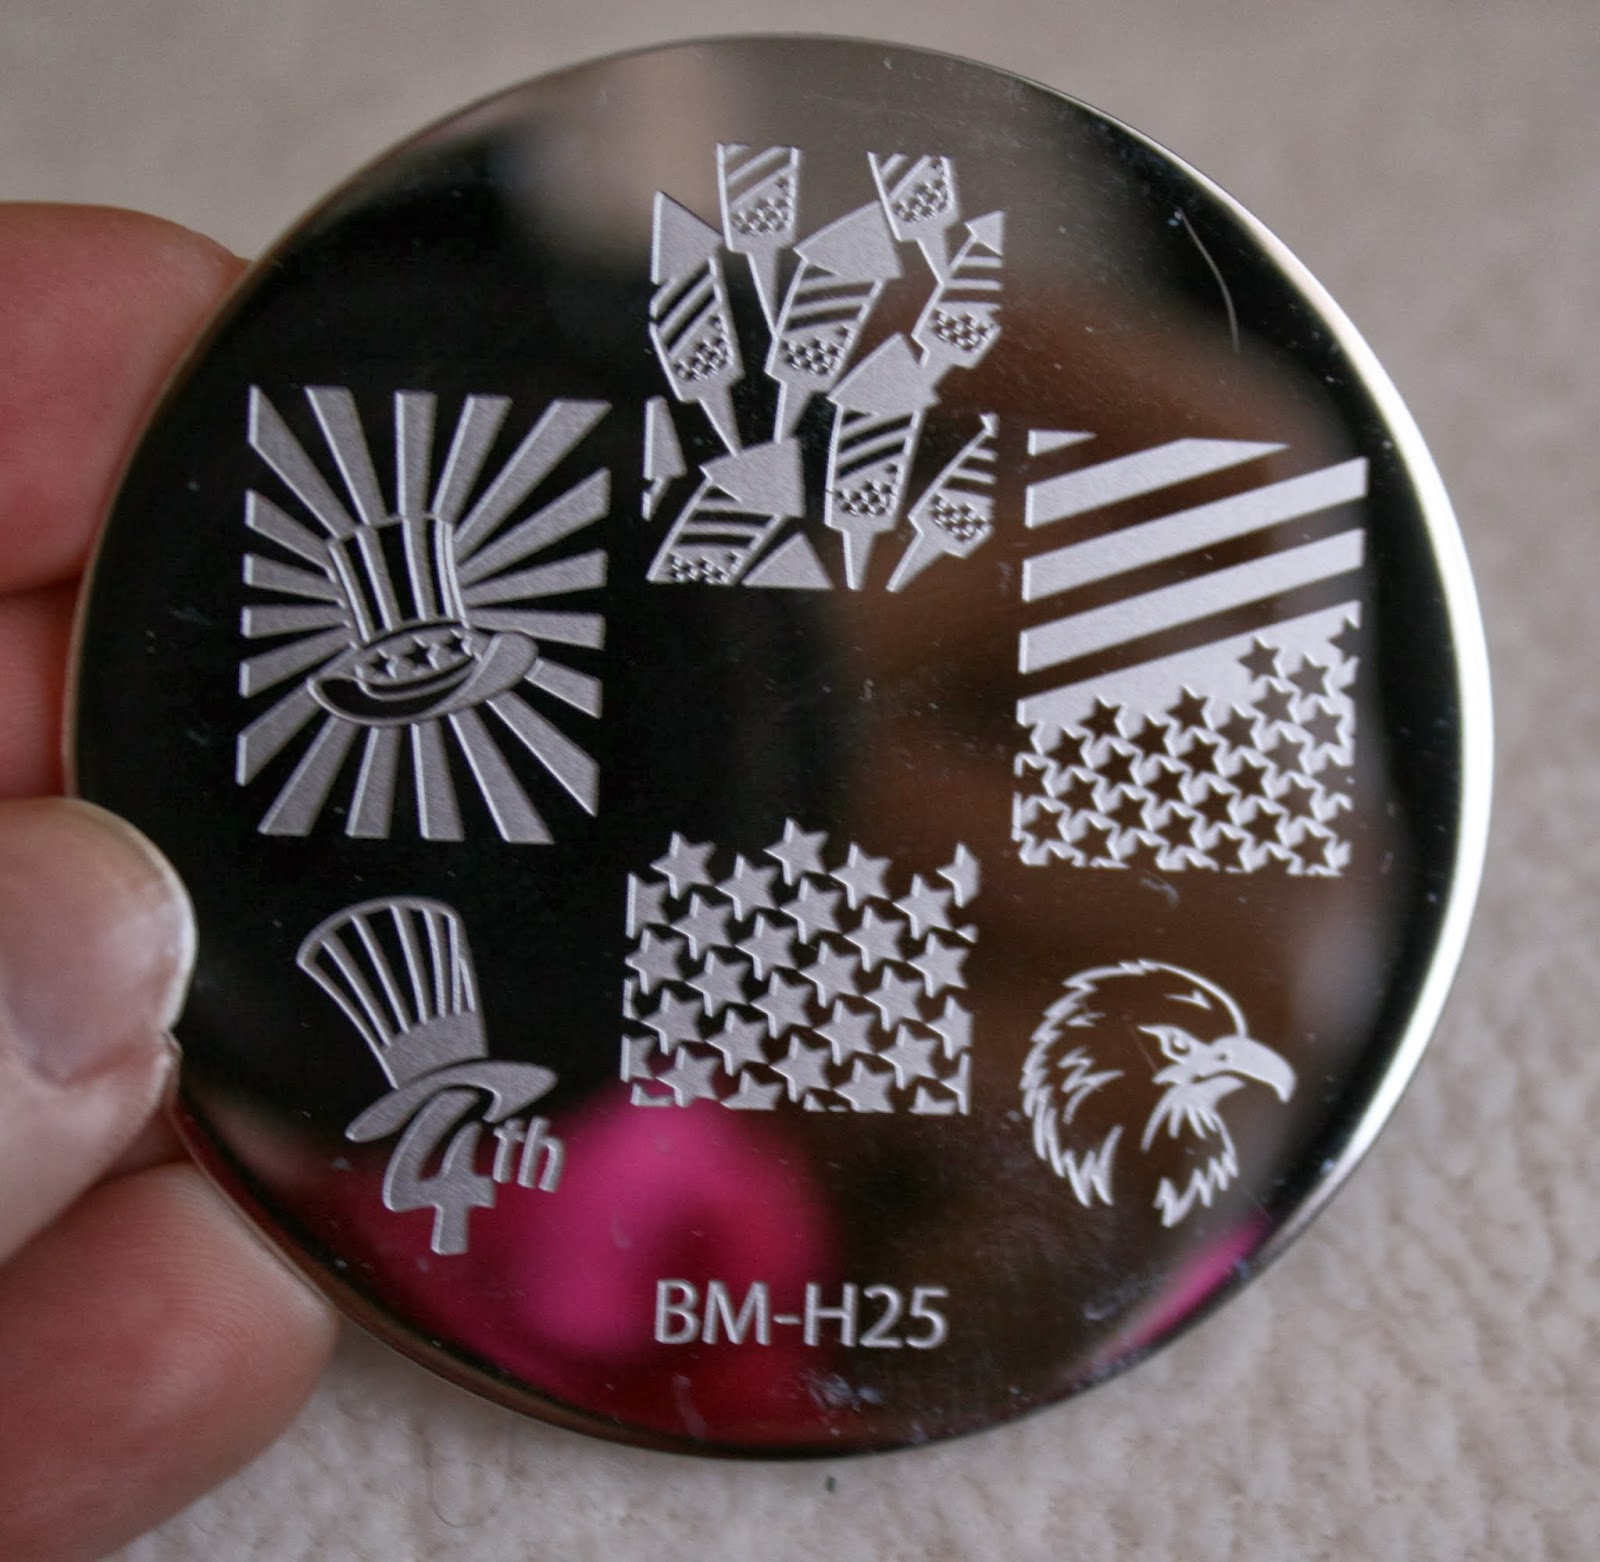 bundle monster nail stamping plates set collection holiday 2013 nails art stamp konad bm-h25